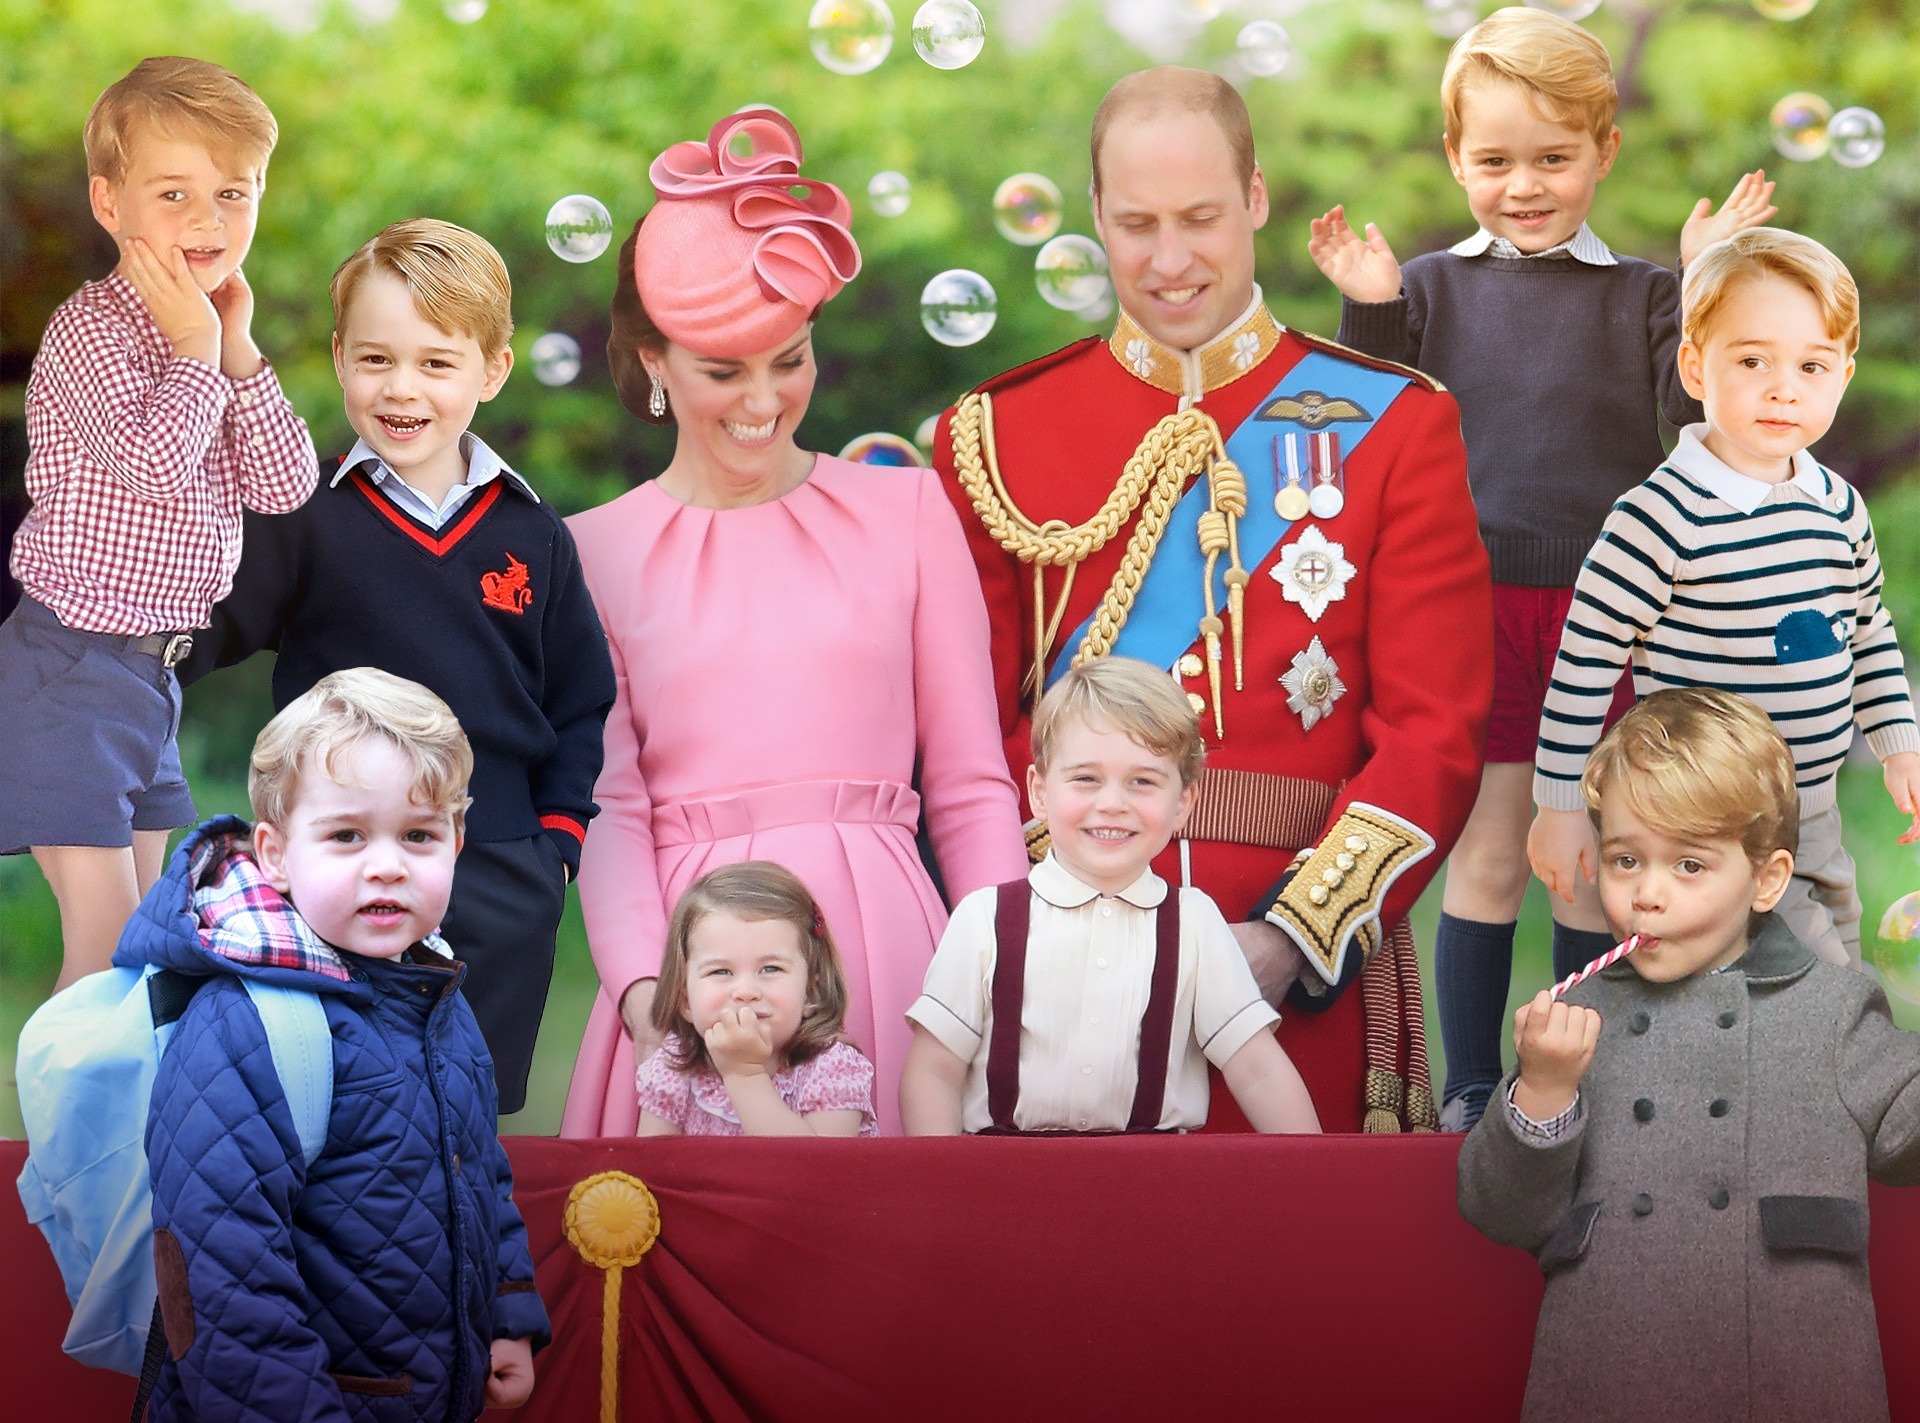 Prince George Is Living His Best Life: Inside His Precious Royal World